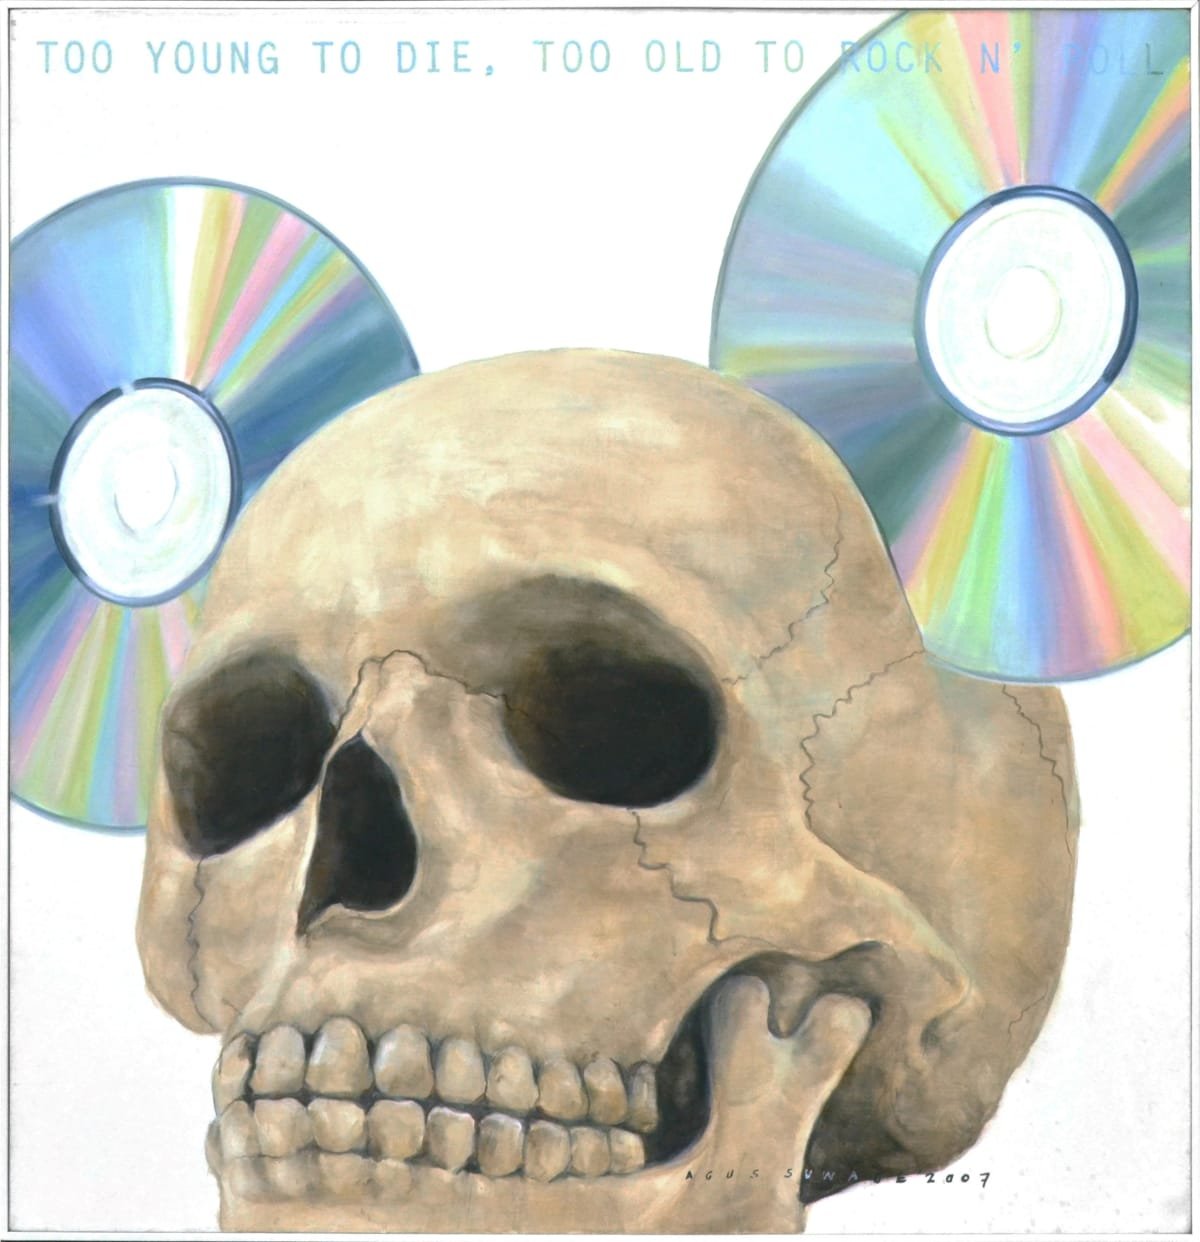 Too Young to Die, Too Old to Rock n Roll, 2007